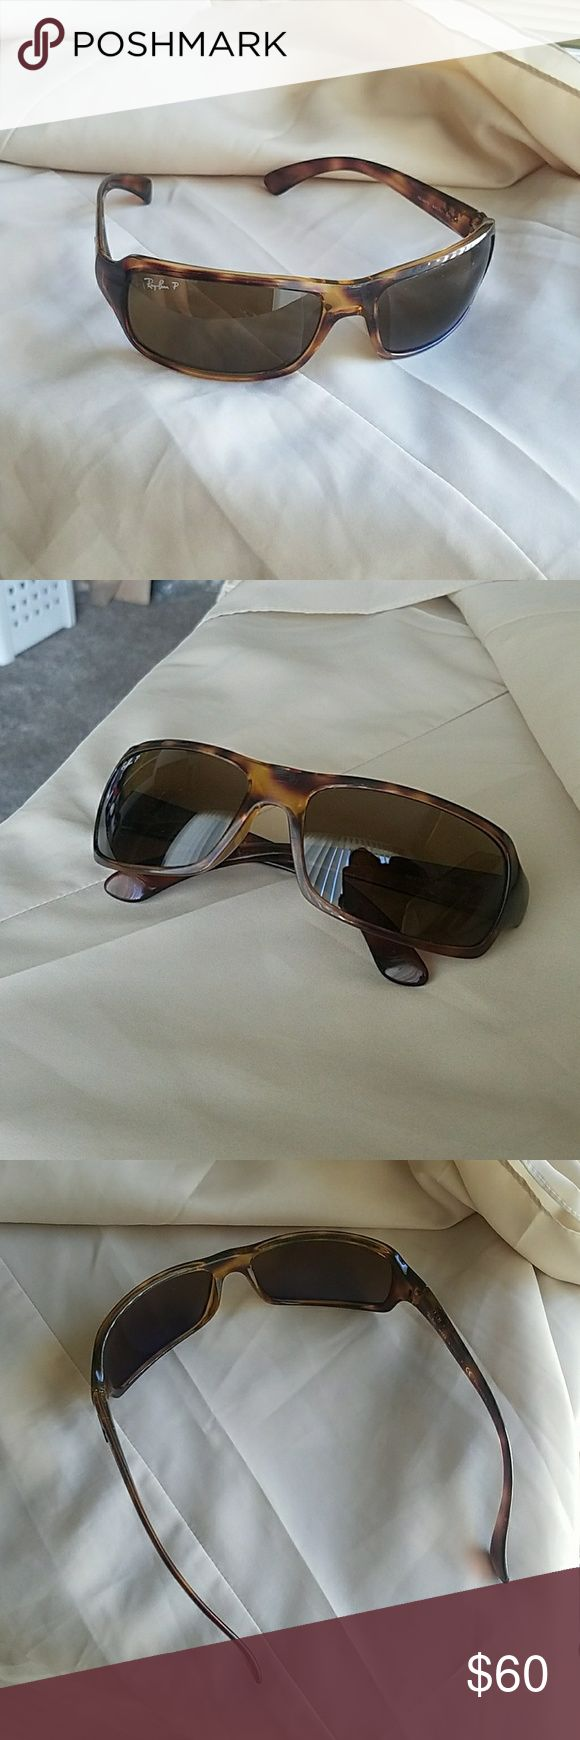 Ray Ban sunglasses Polarized Italy made Authentic Authentic Ray Ban P sunglasses Sporty Style RB4075 Made in Italy Tortoise shell frame  P for Polarized (blocks glare from reflected light too) The inside of lens has a cool bluish tint (doesn't look blue when you look through them though)  Scratch on right lens shown in last photo & scuffing on bridge of nose shown in second to last photo Ray-Ban Accessories Sunglasses